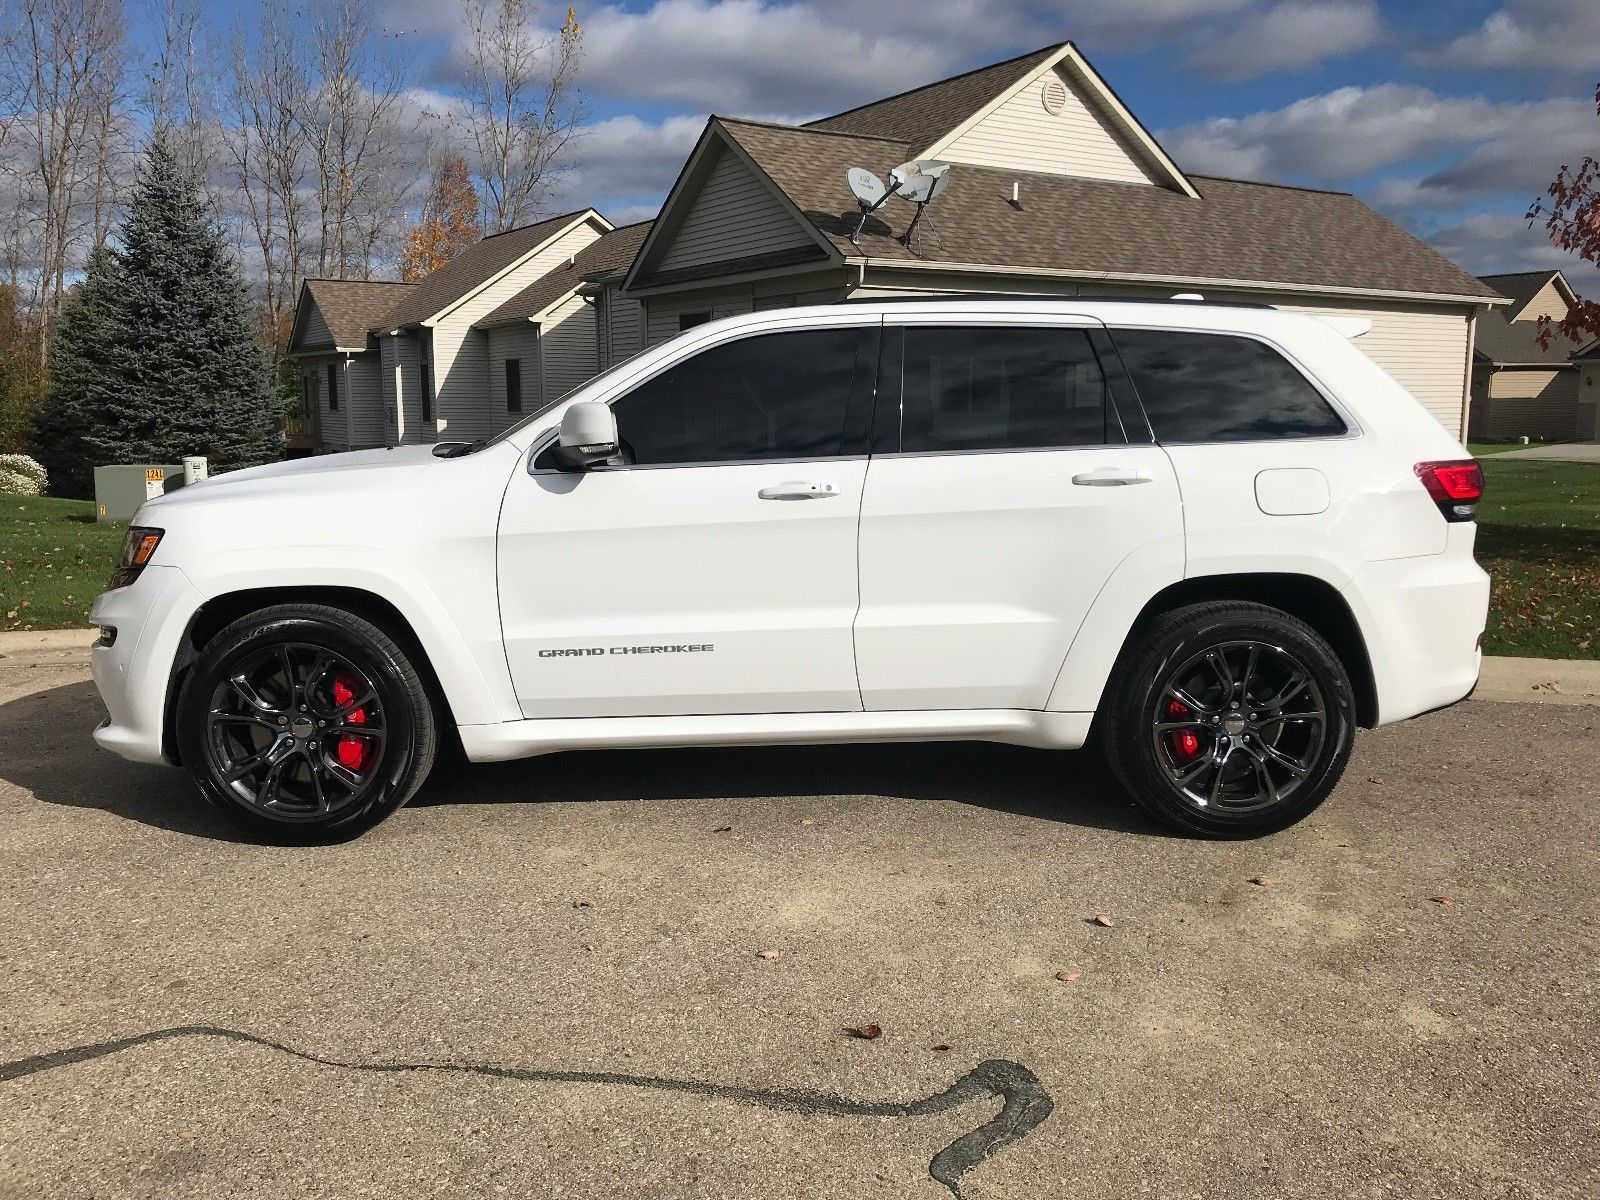 Amazing 2015 Jeep Grand Cherokee Srt 8 2015 Jeep Grand Cherokee Srt8 Awd 7k Miles Nav Panorama